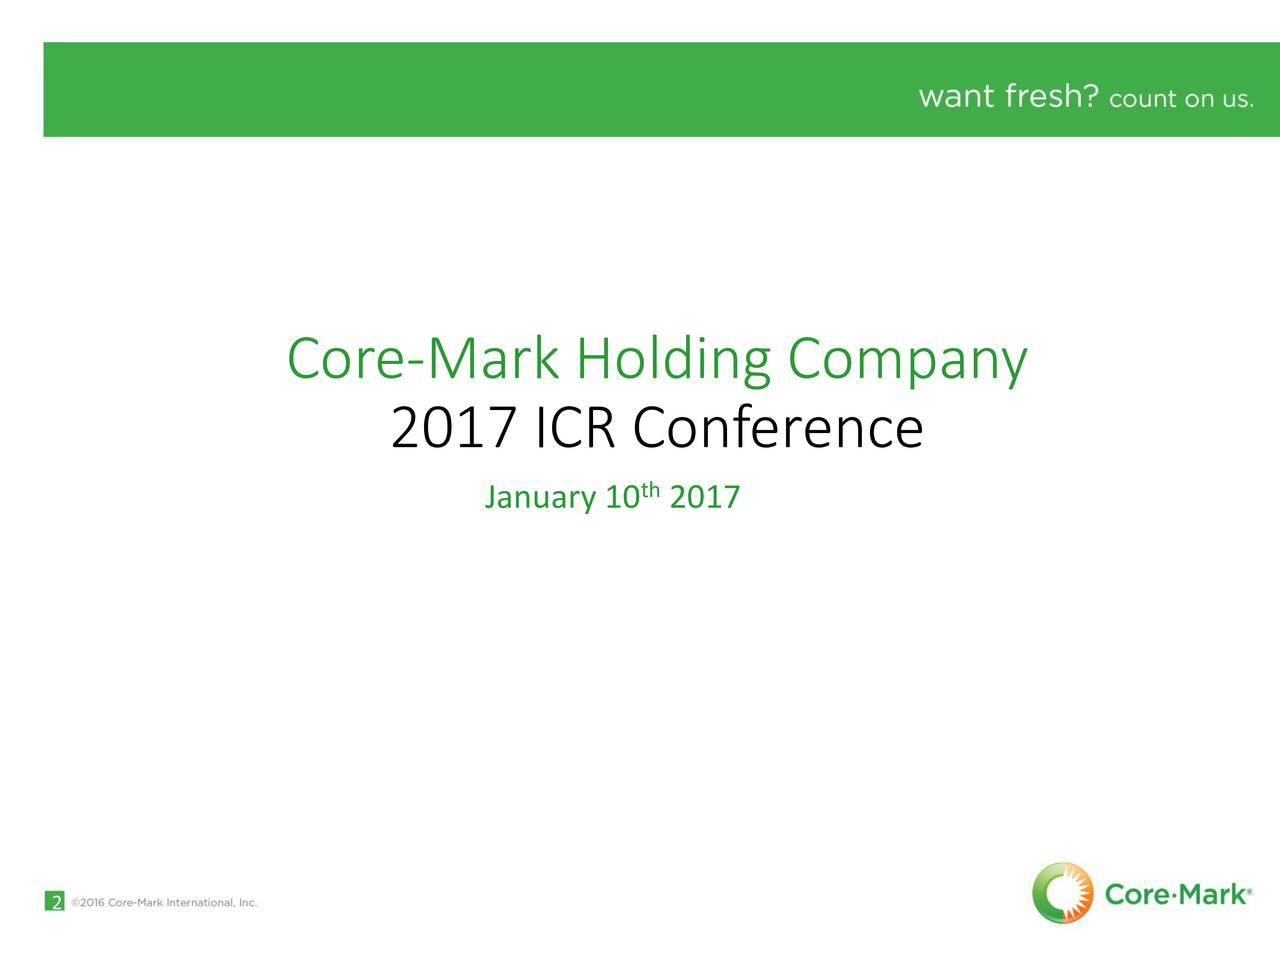 2017 ICR Conference January 10 2017 2